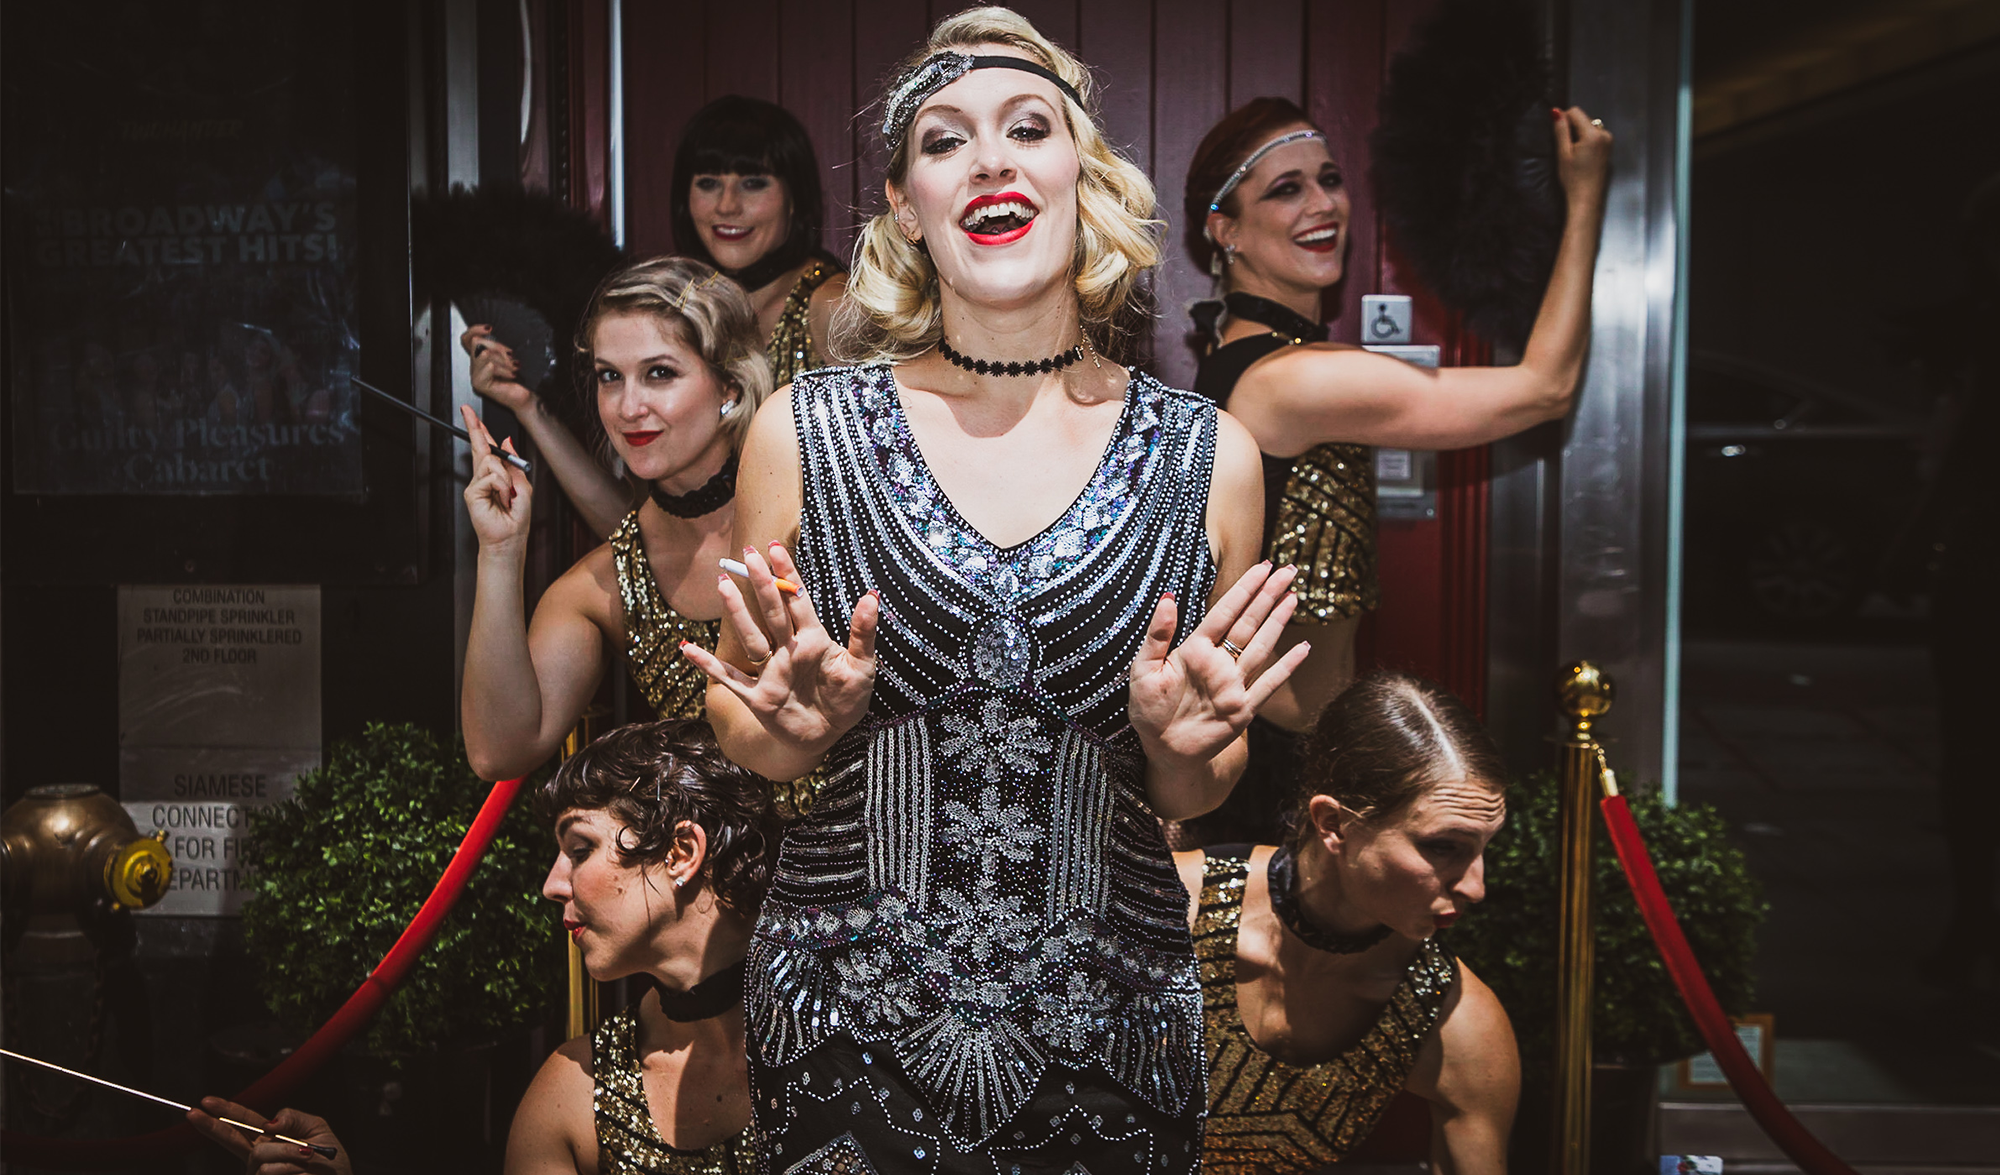 Guilty Pleasures Cabaret Speakeasy Social